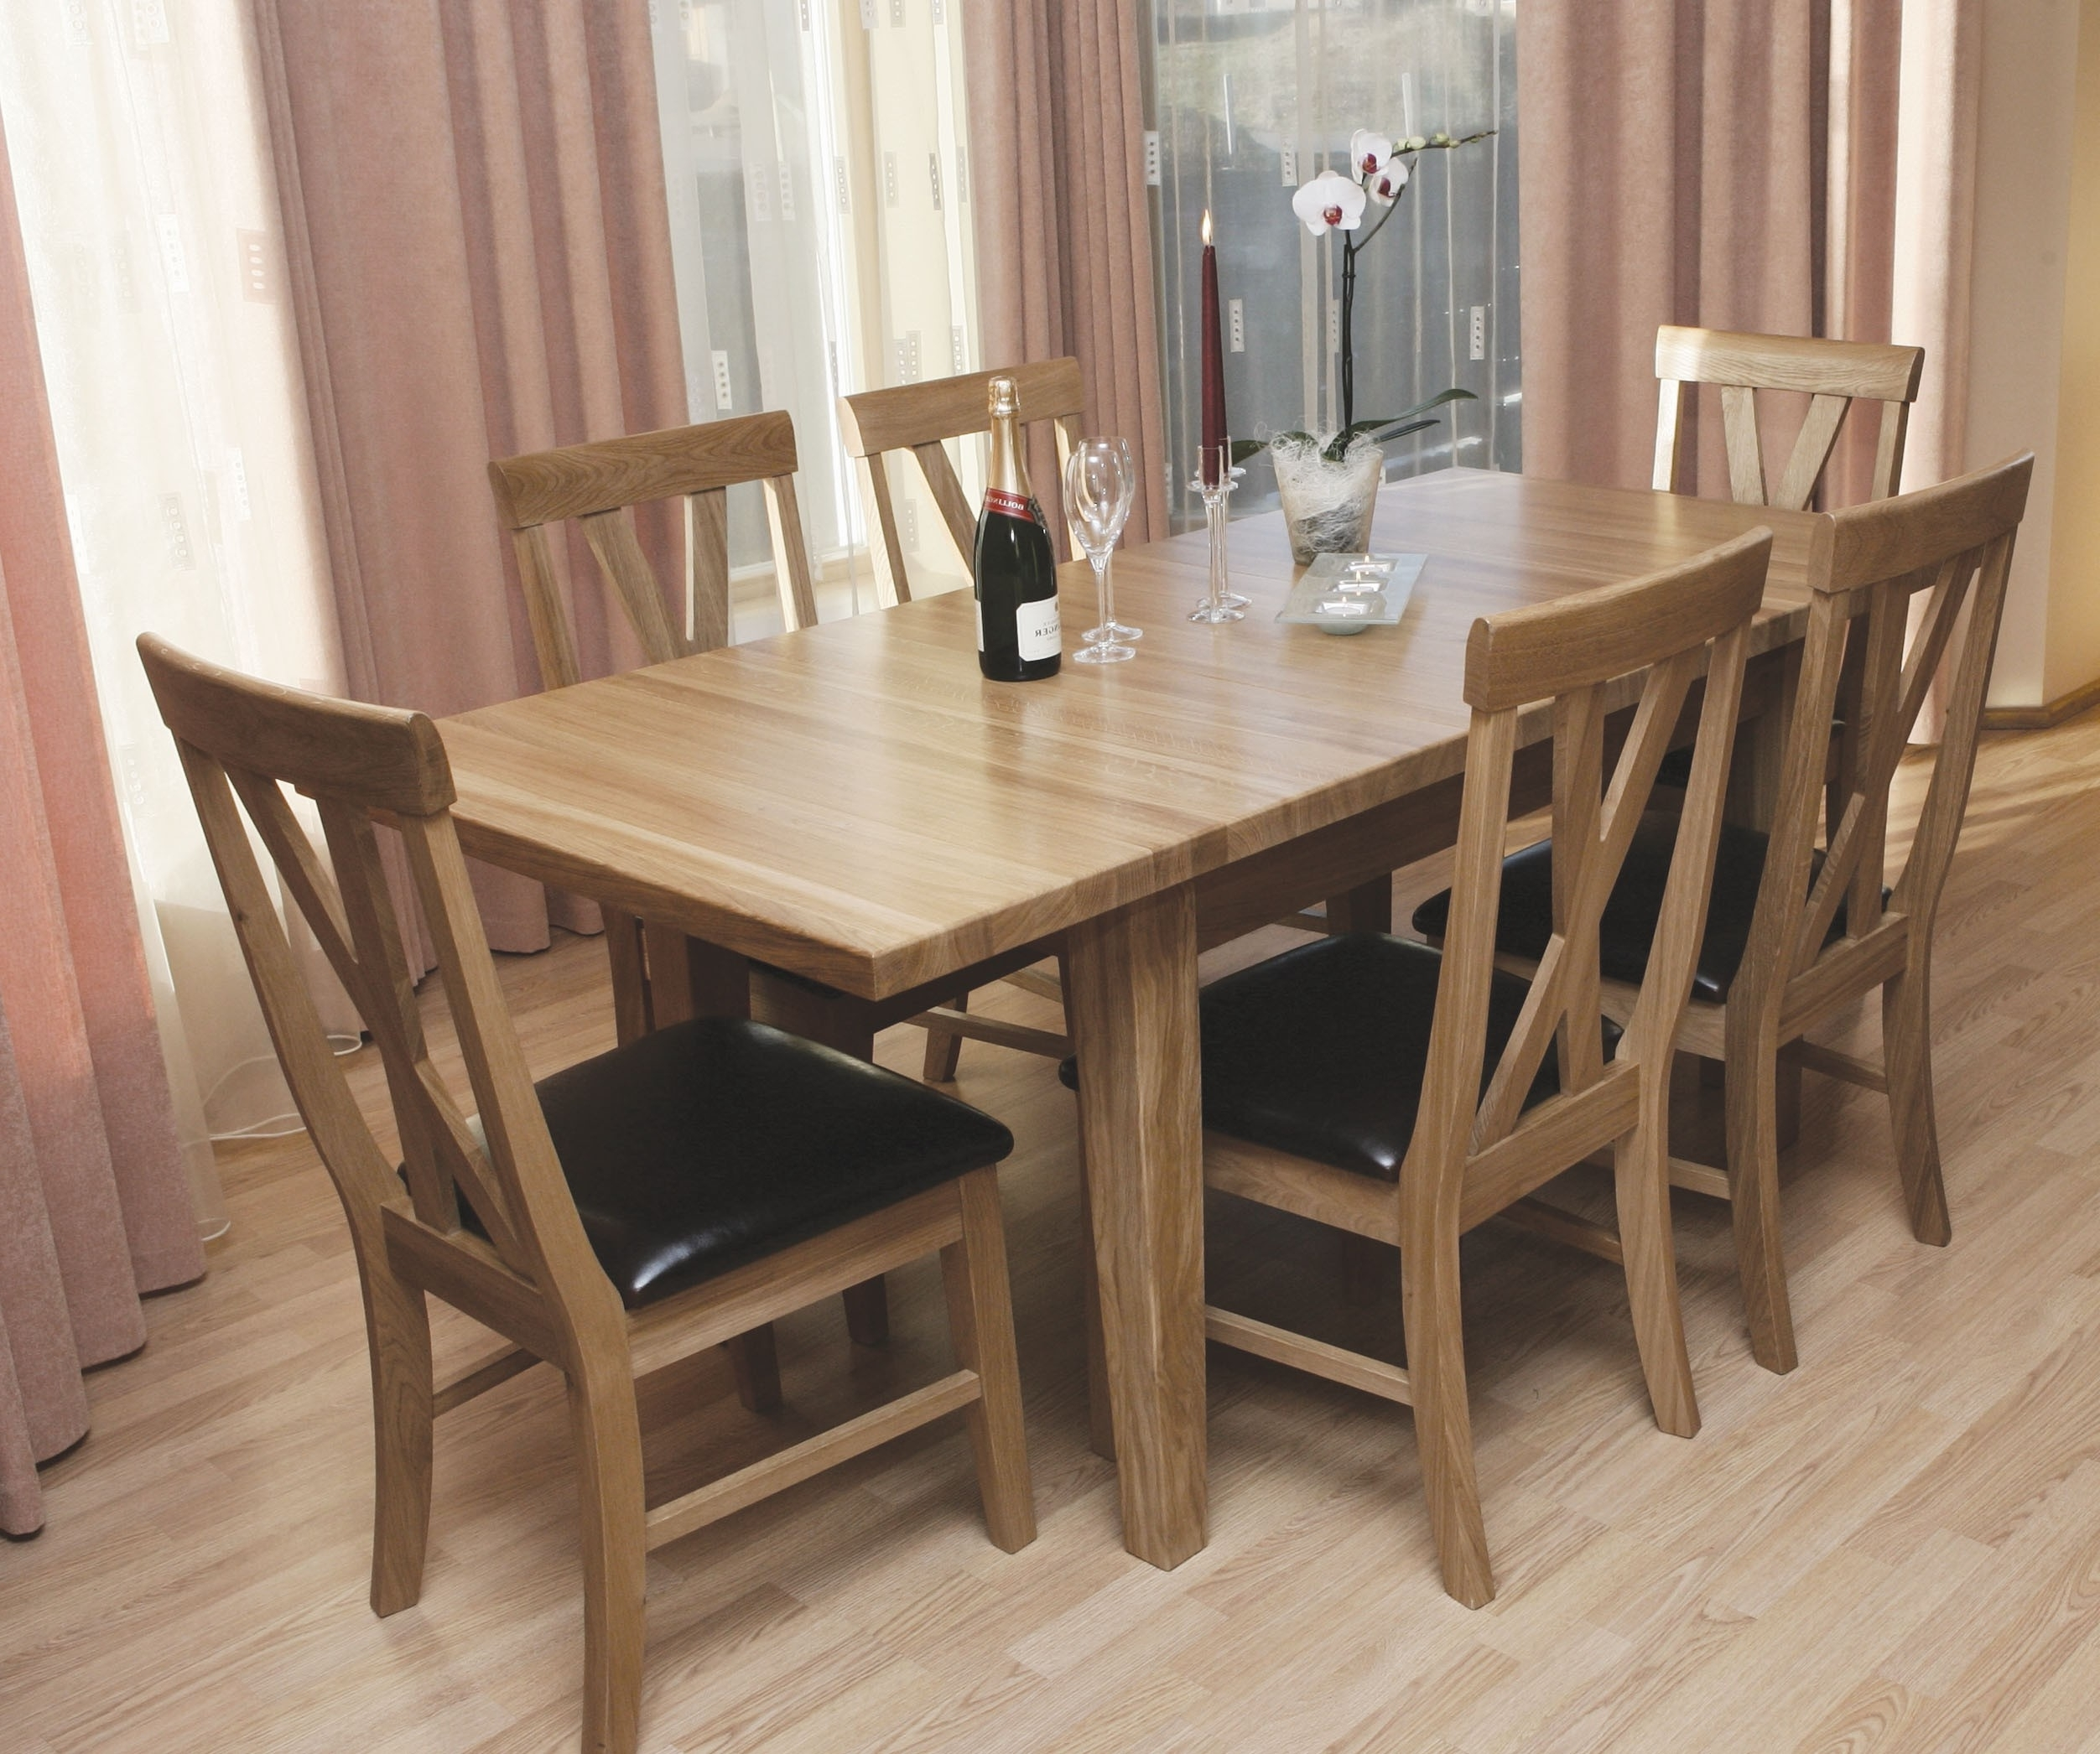 Newest Oak Furniture Dining Sets Throughout Tch Warwick 6 Seat Dining Table & Chairs Set Solid Oak – Furniture (View 14 of 25)